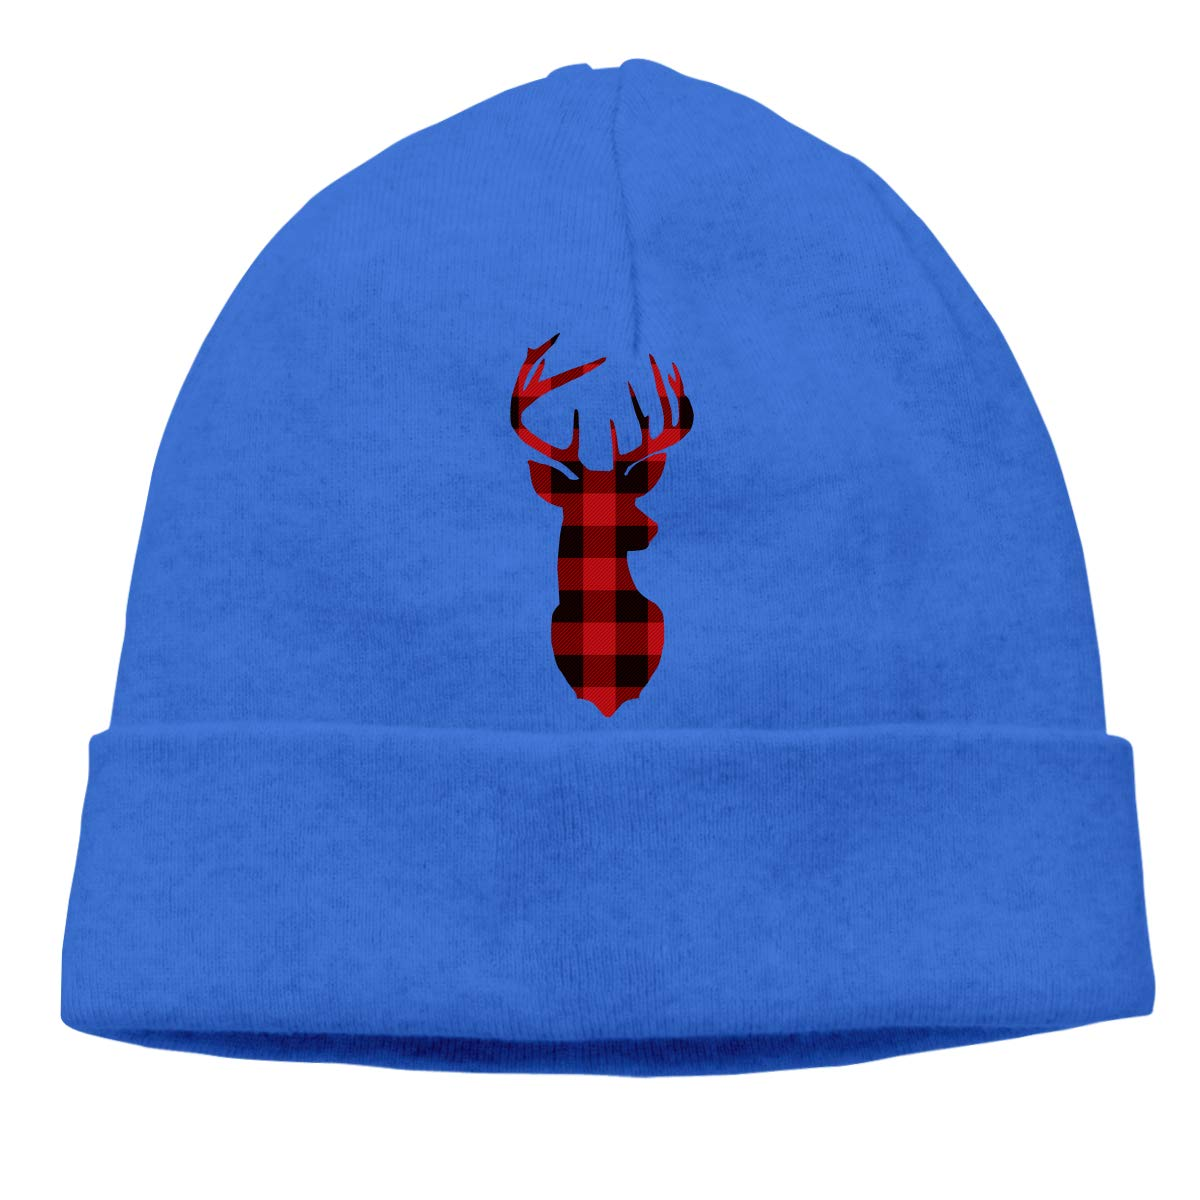 Beanie Hat Buffalo Plaid Deer Warm Skull Caps for Men and Women